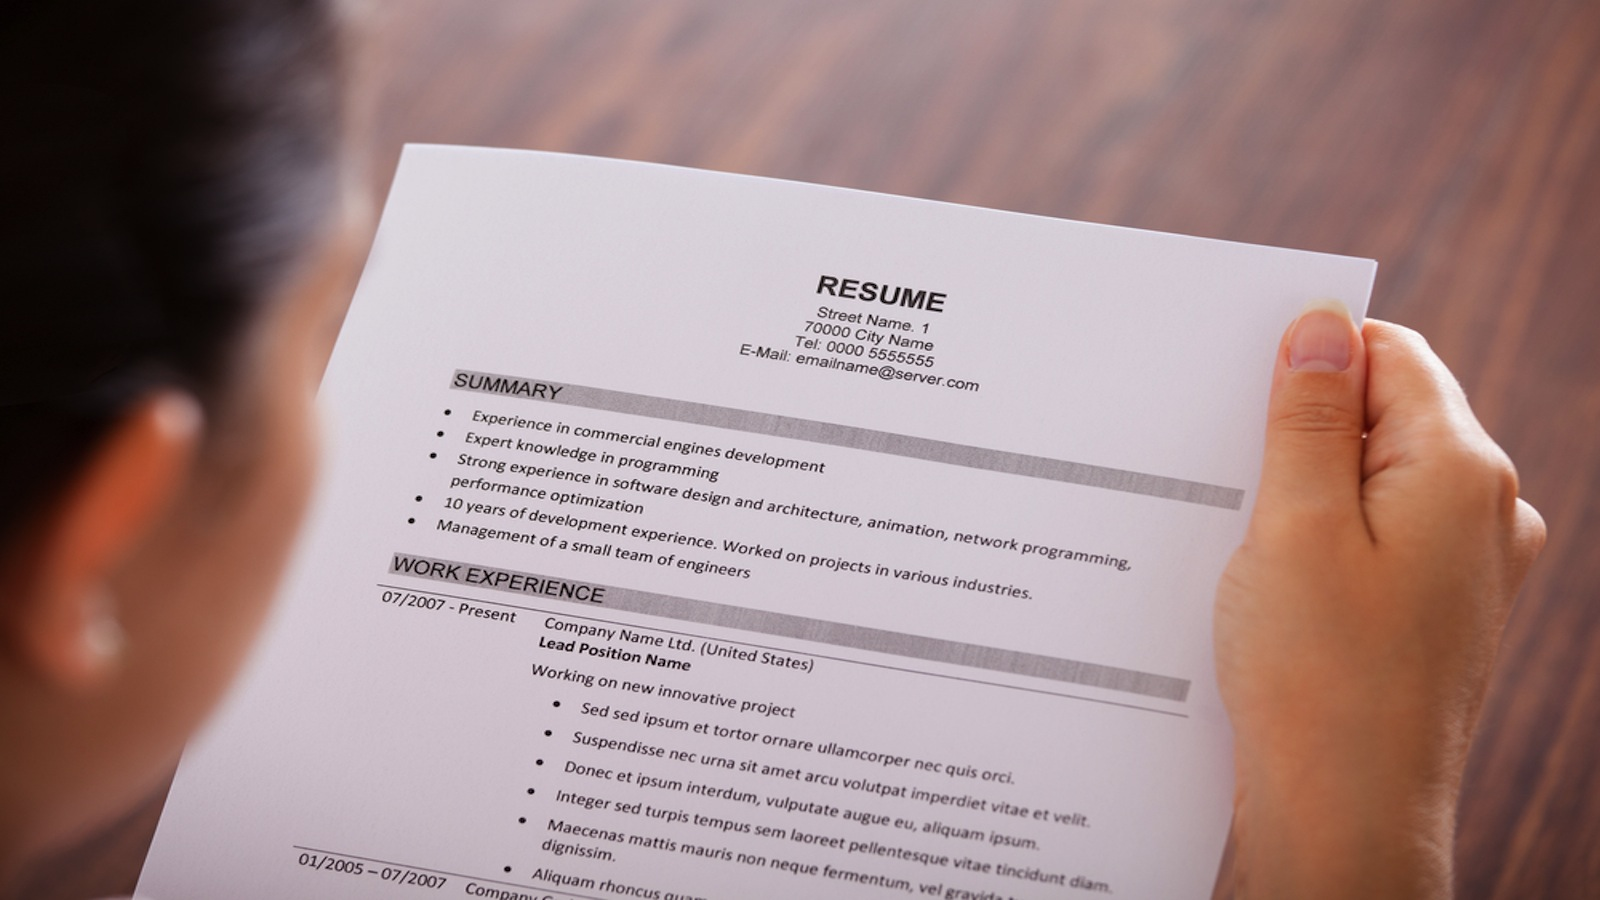 Build resume net temps